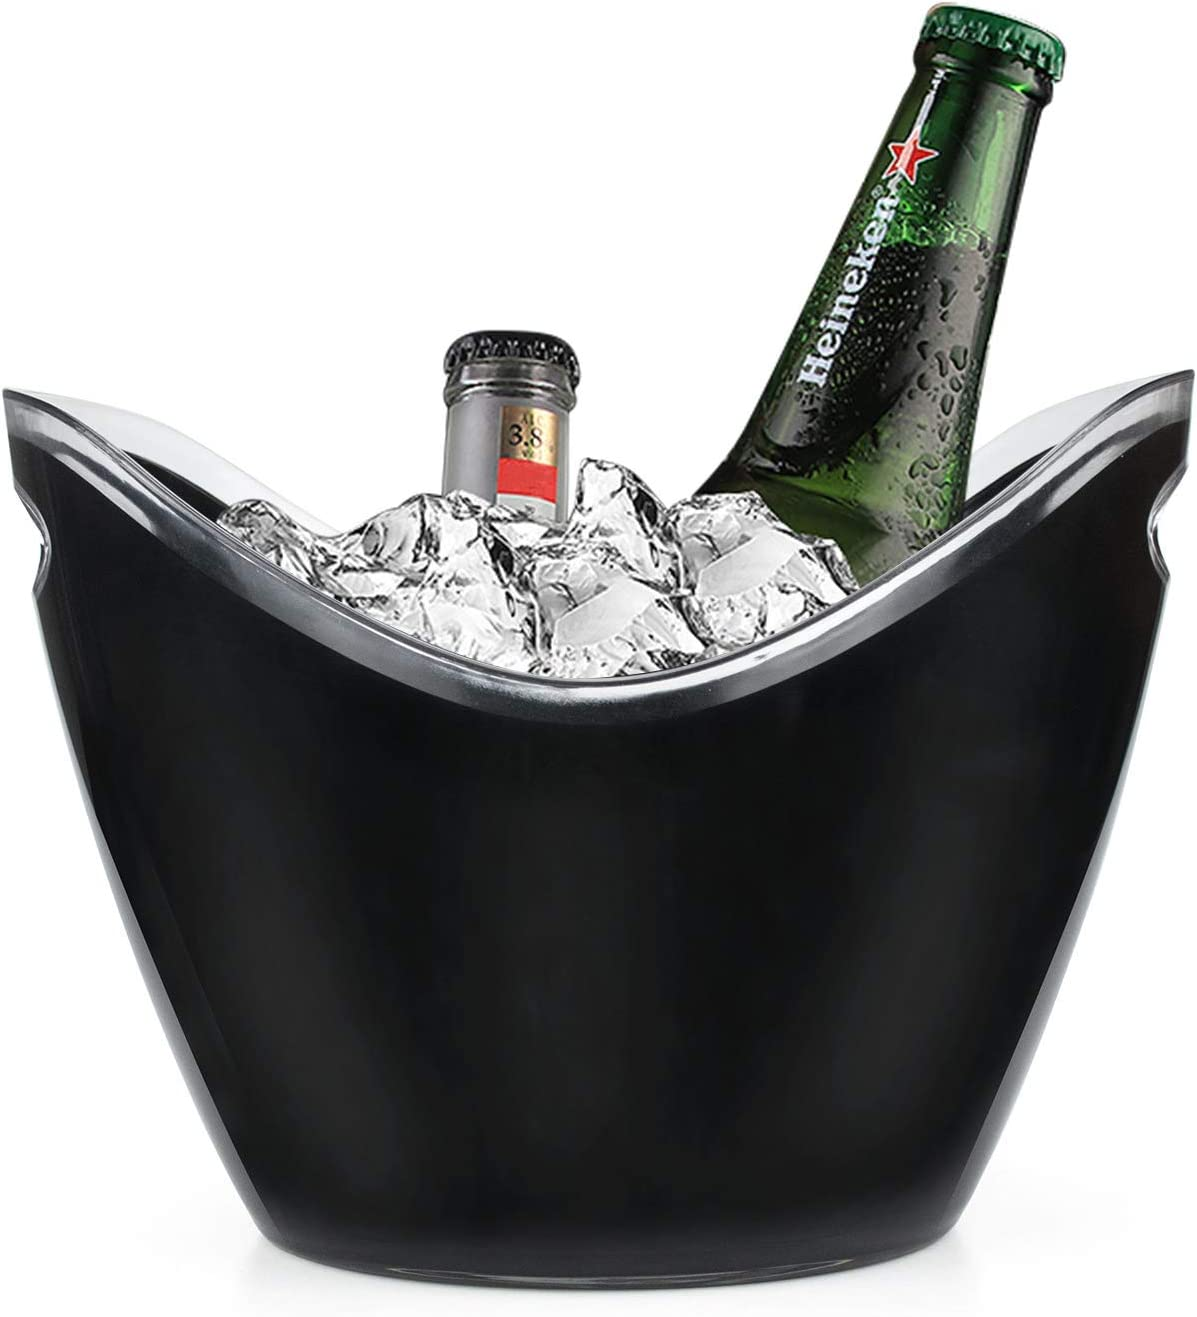 Yesland Ice Bucket, 3.5 L Black Plastic Party Bottle Chiller - 10.5 x 8 x 7-3/4 Inch Ice Beverage/Storage Tub - Perfect for Wine, Champagne or Beer Bottles